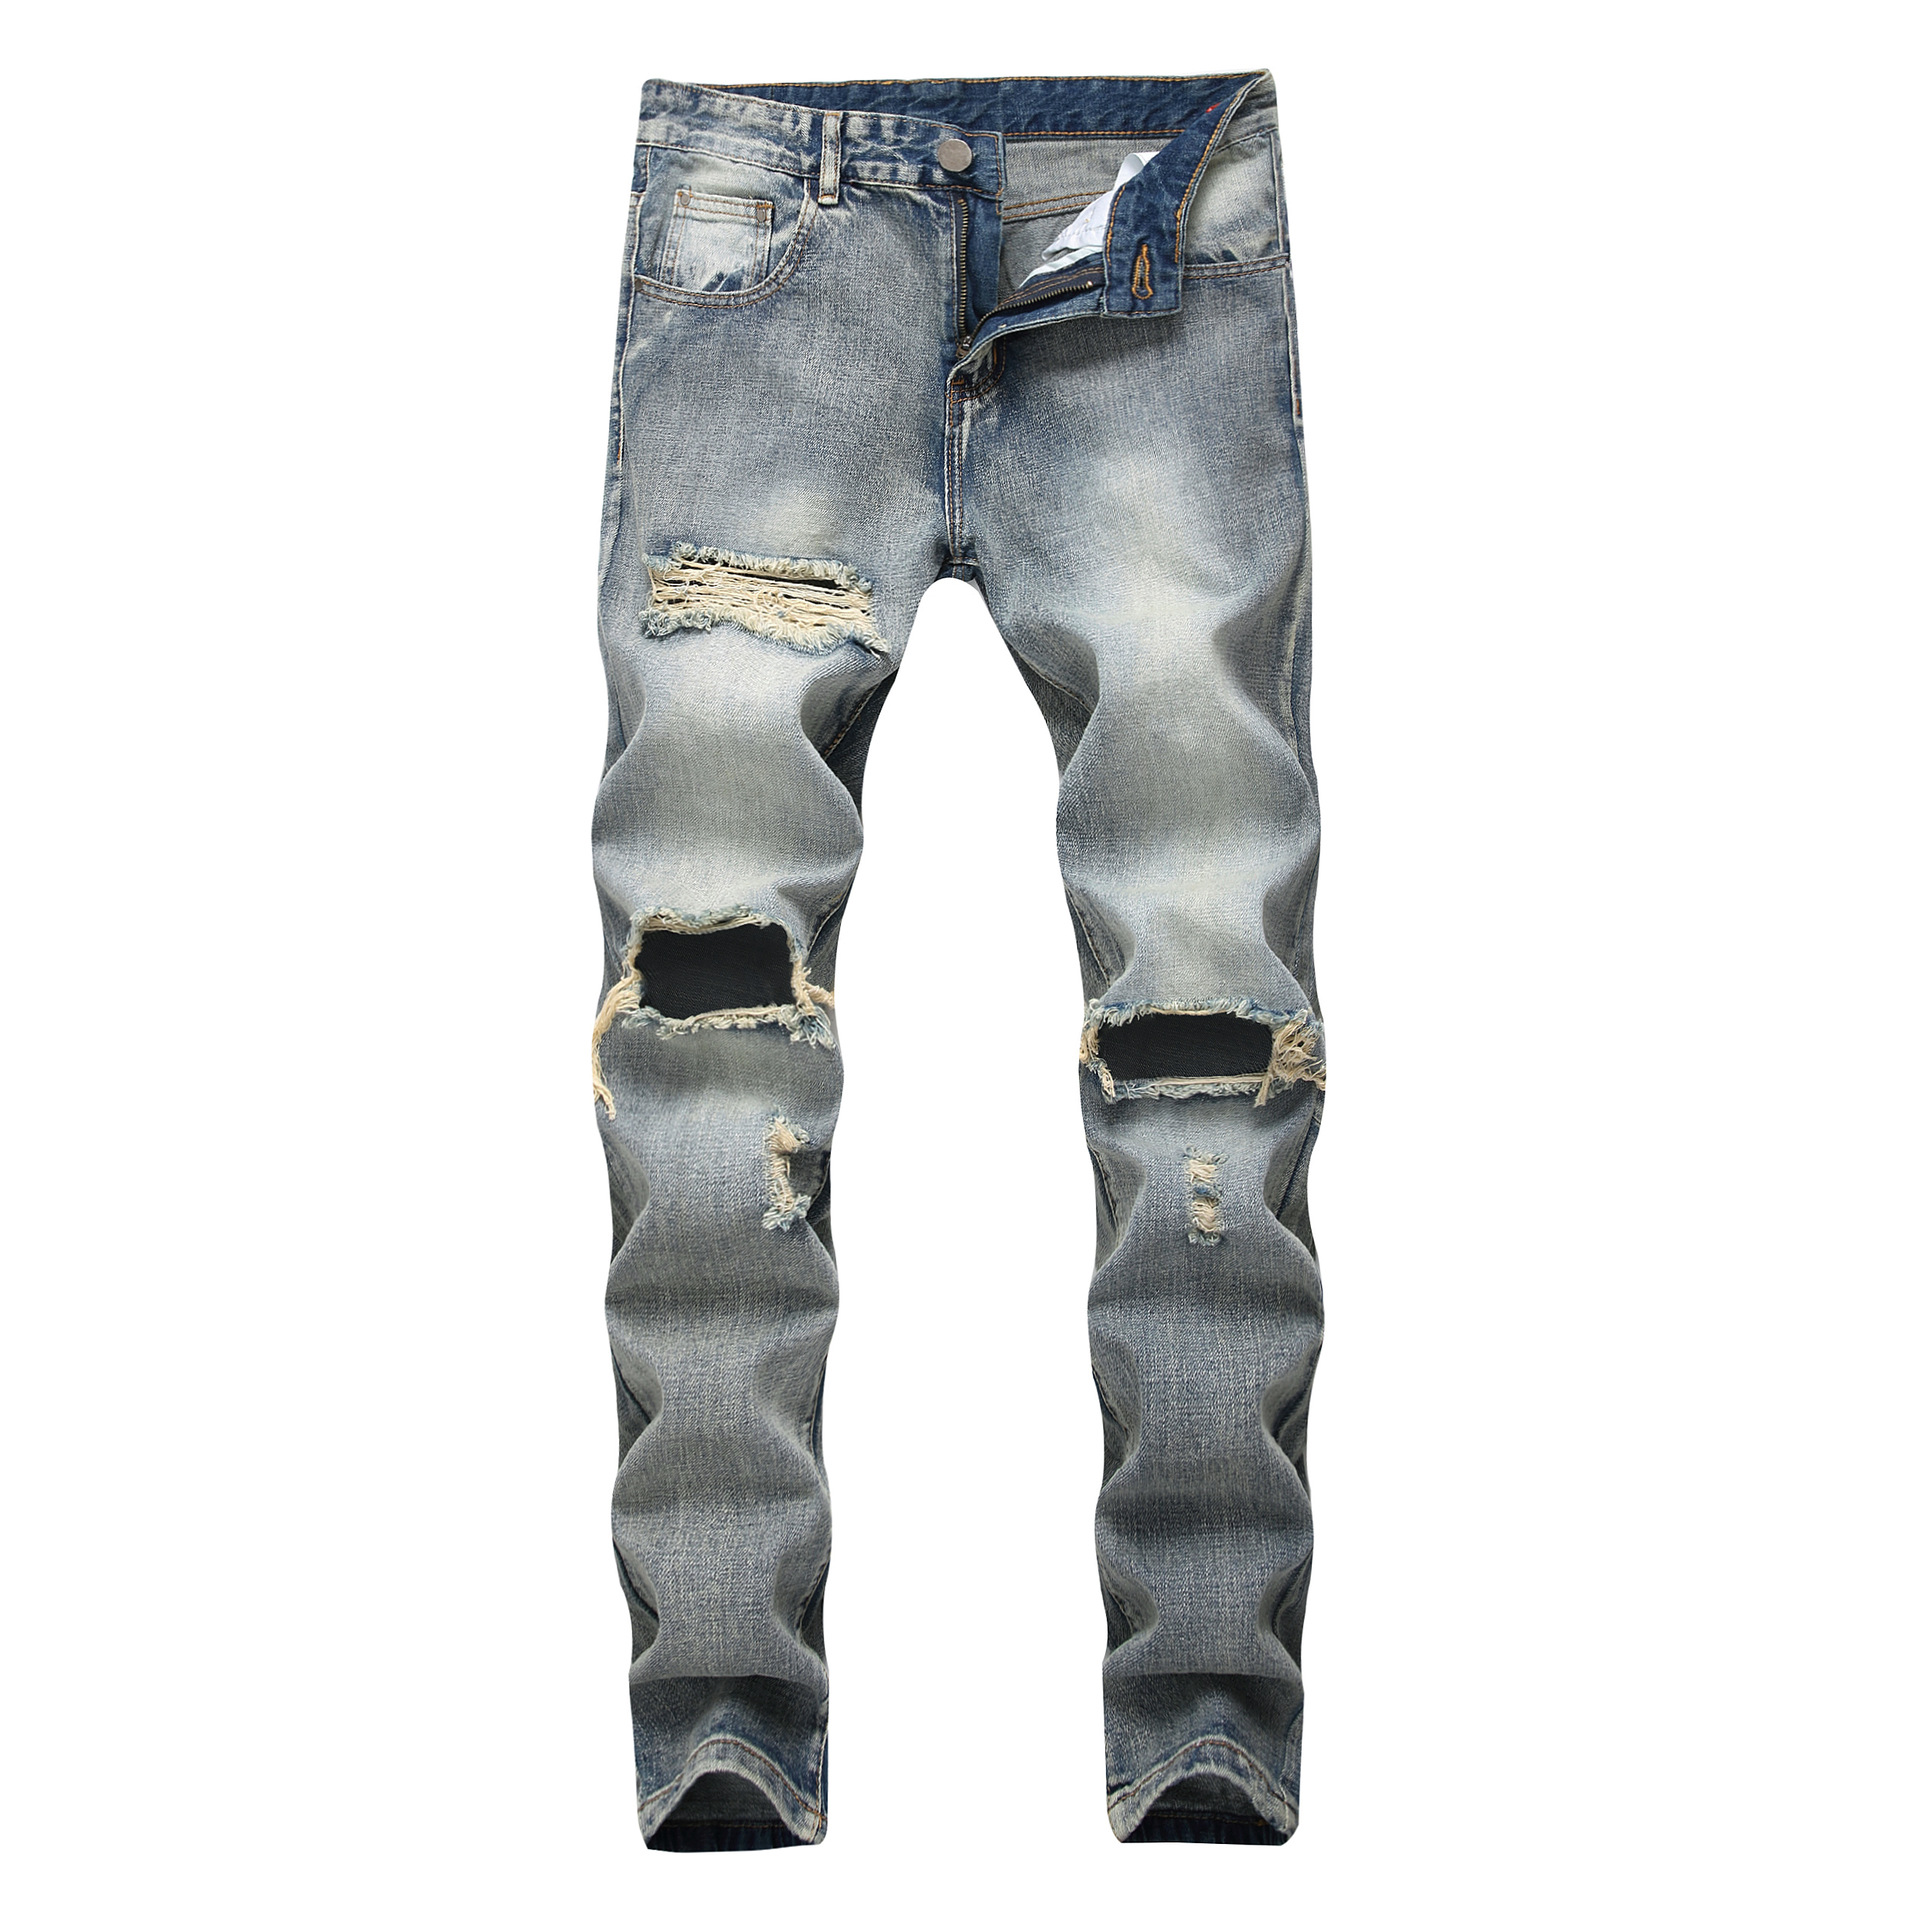 Cotton Mid Waist Slim Fashion Designer Jeans Men Straight Grey Color Printed Mens Jeans Ripped Jeans